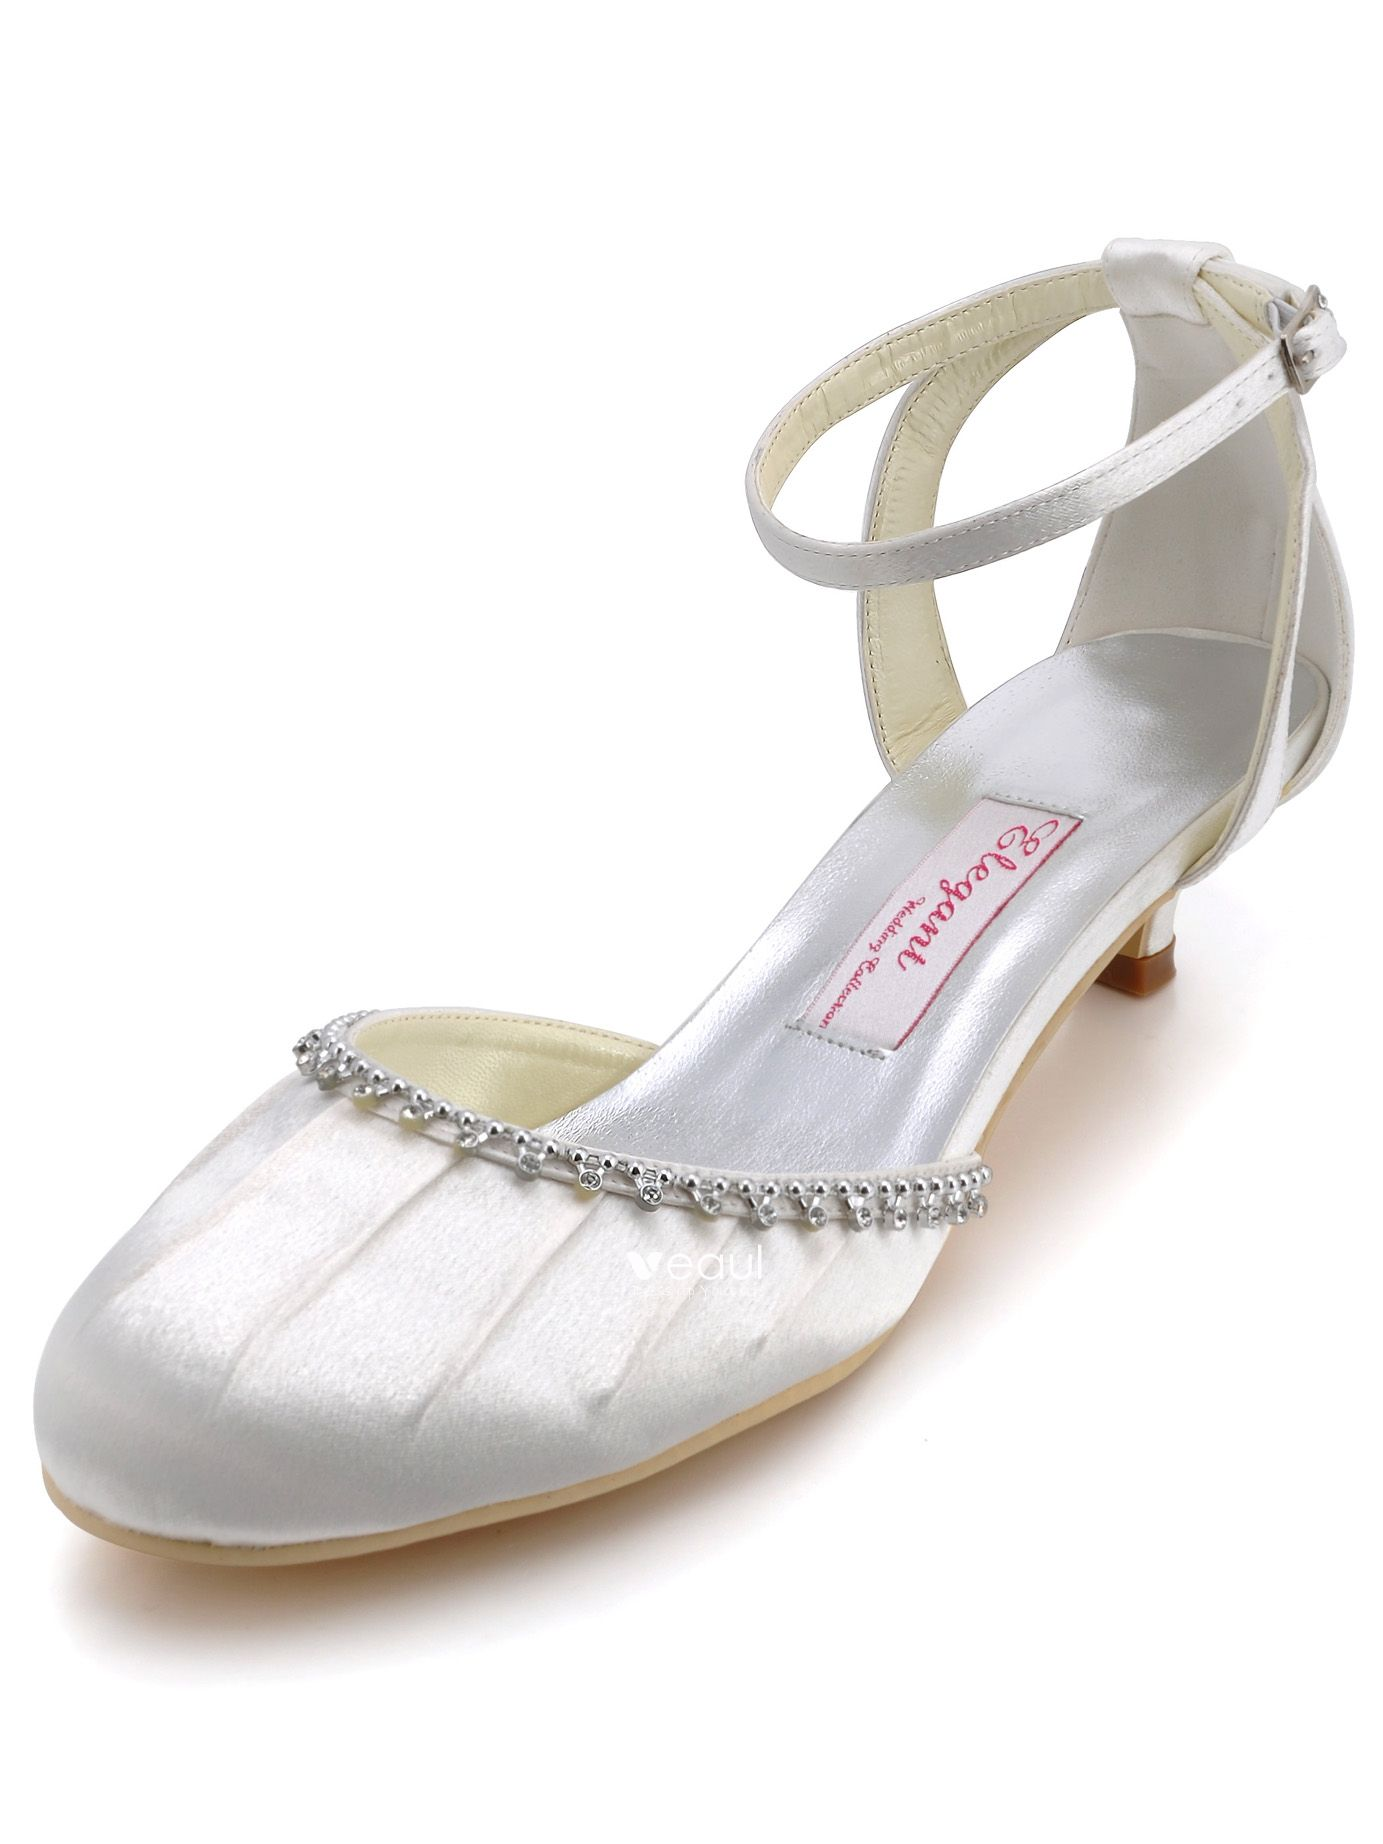 Satin Shoes With Diamond Chain Folds Wedding Shoes